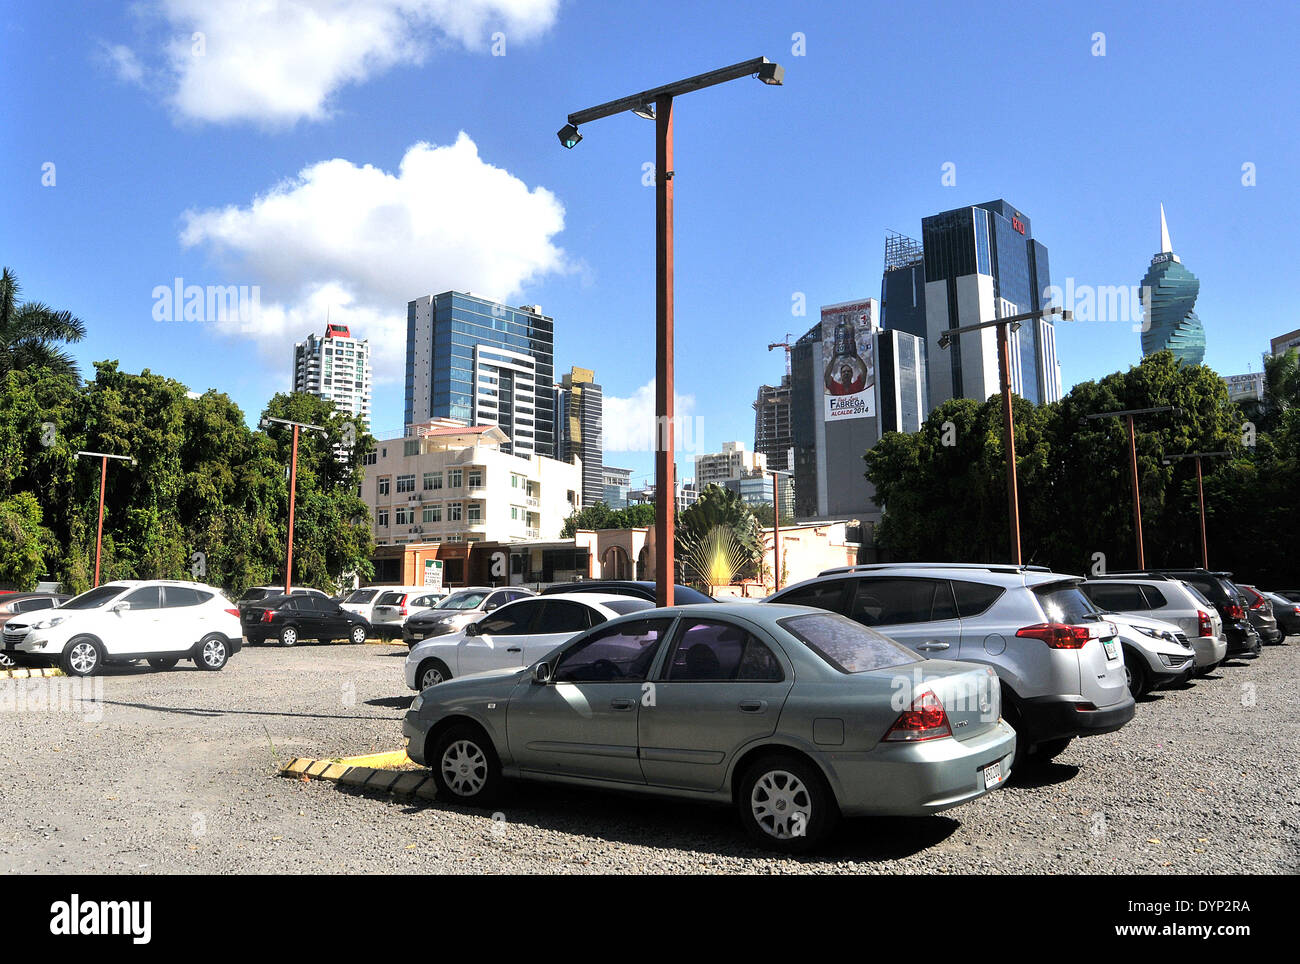 Hotel Cars Stock Photos Amp Hotel Cars Stock Images Alamy